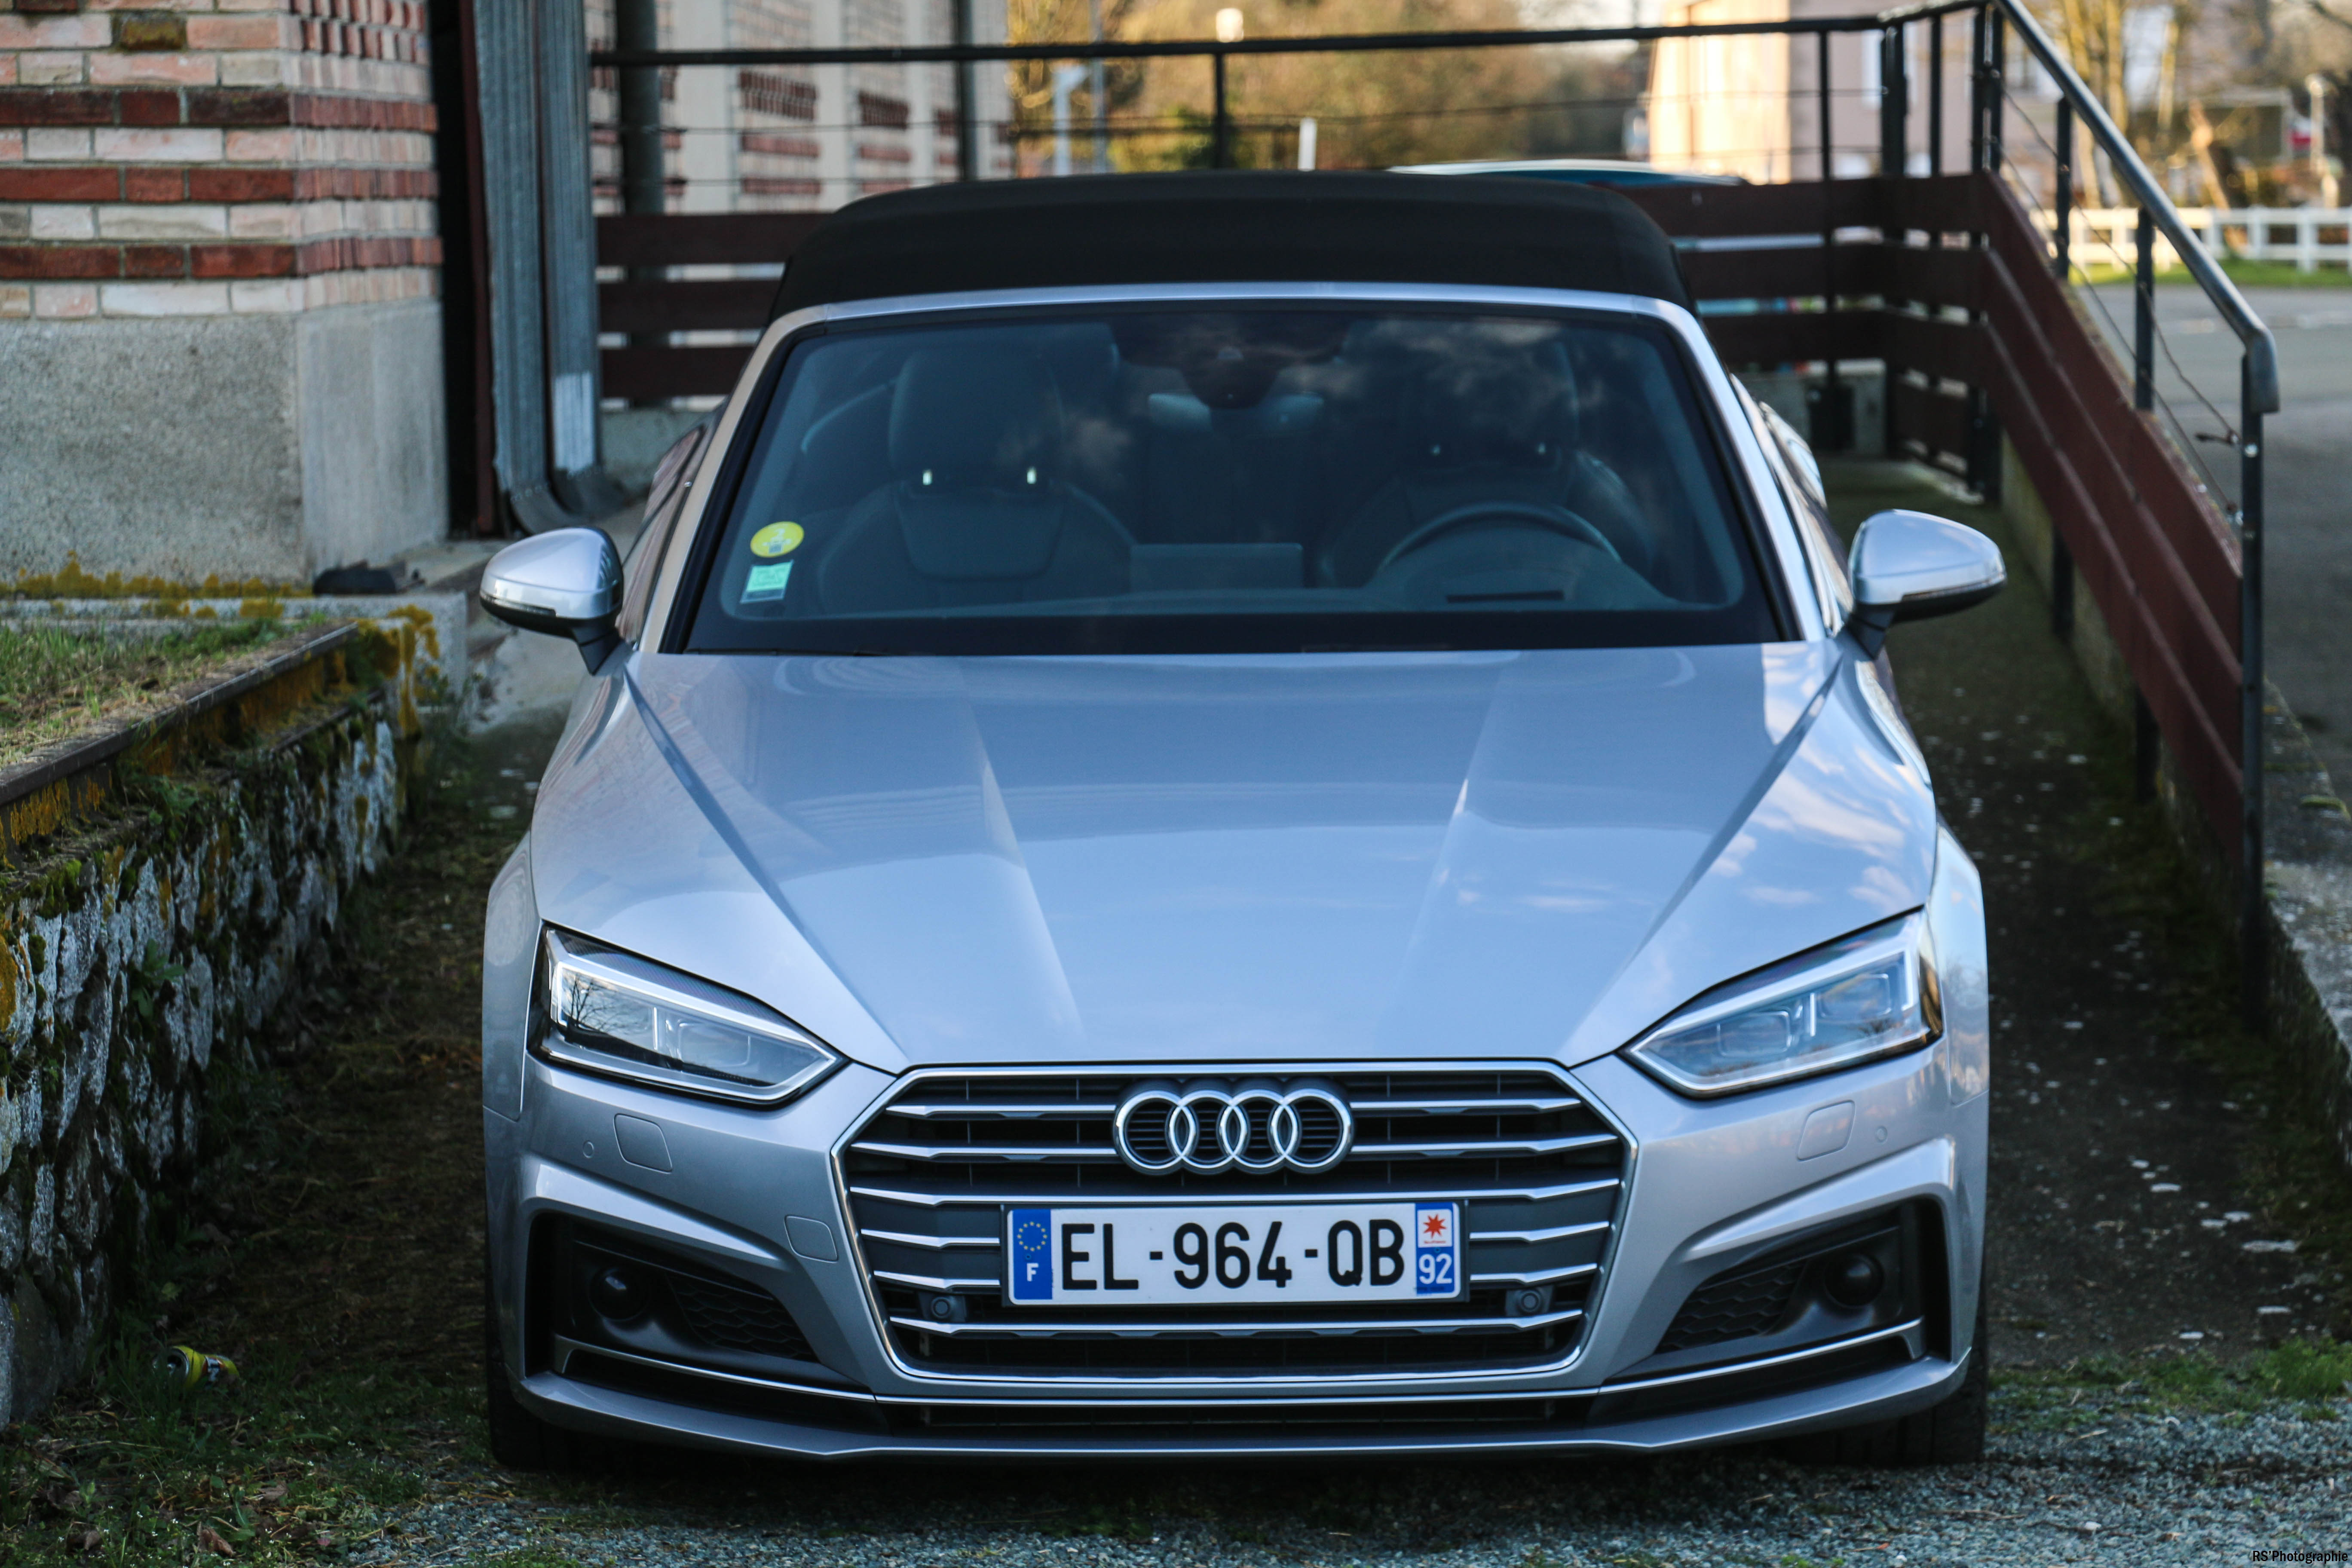 audia5cab39-audi-a5-190-tdi-cabriolet-avant-front-Arnaud Demasier-RSPhotographie